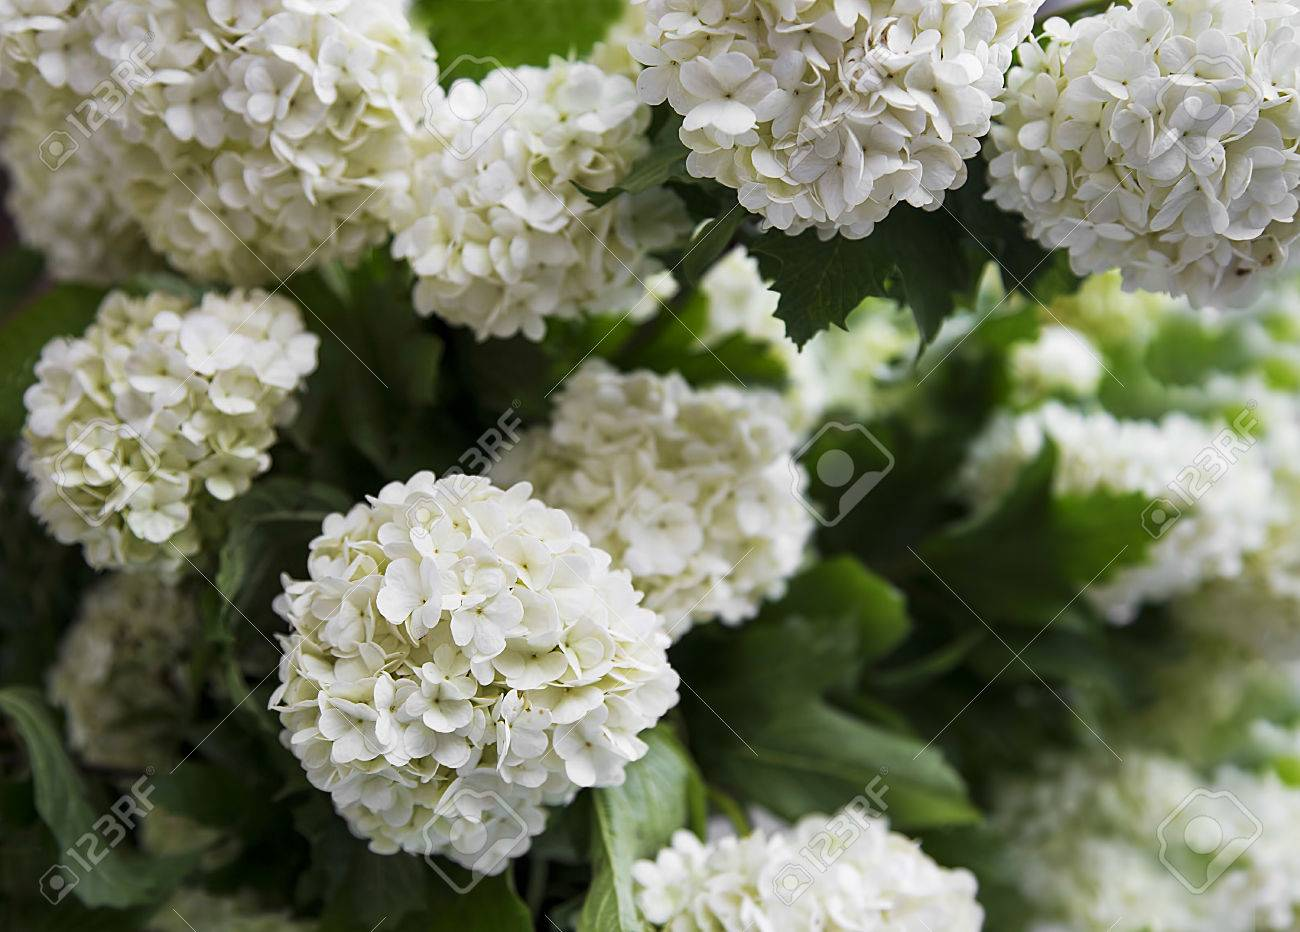 White snowball flowers viburnum opulus beautiful white rounded stock photo white snowball flowers viburnum opulus beautiful white rounded flowers mightylinksfo